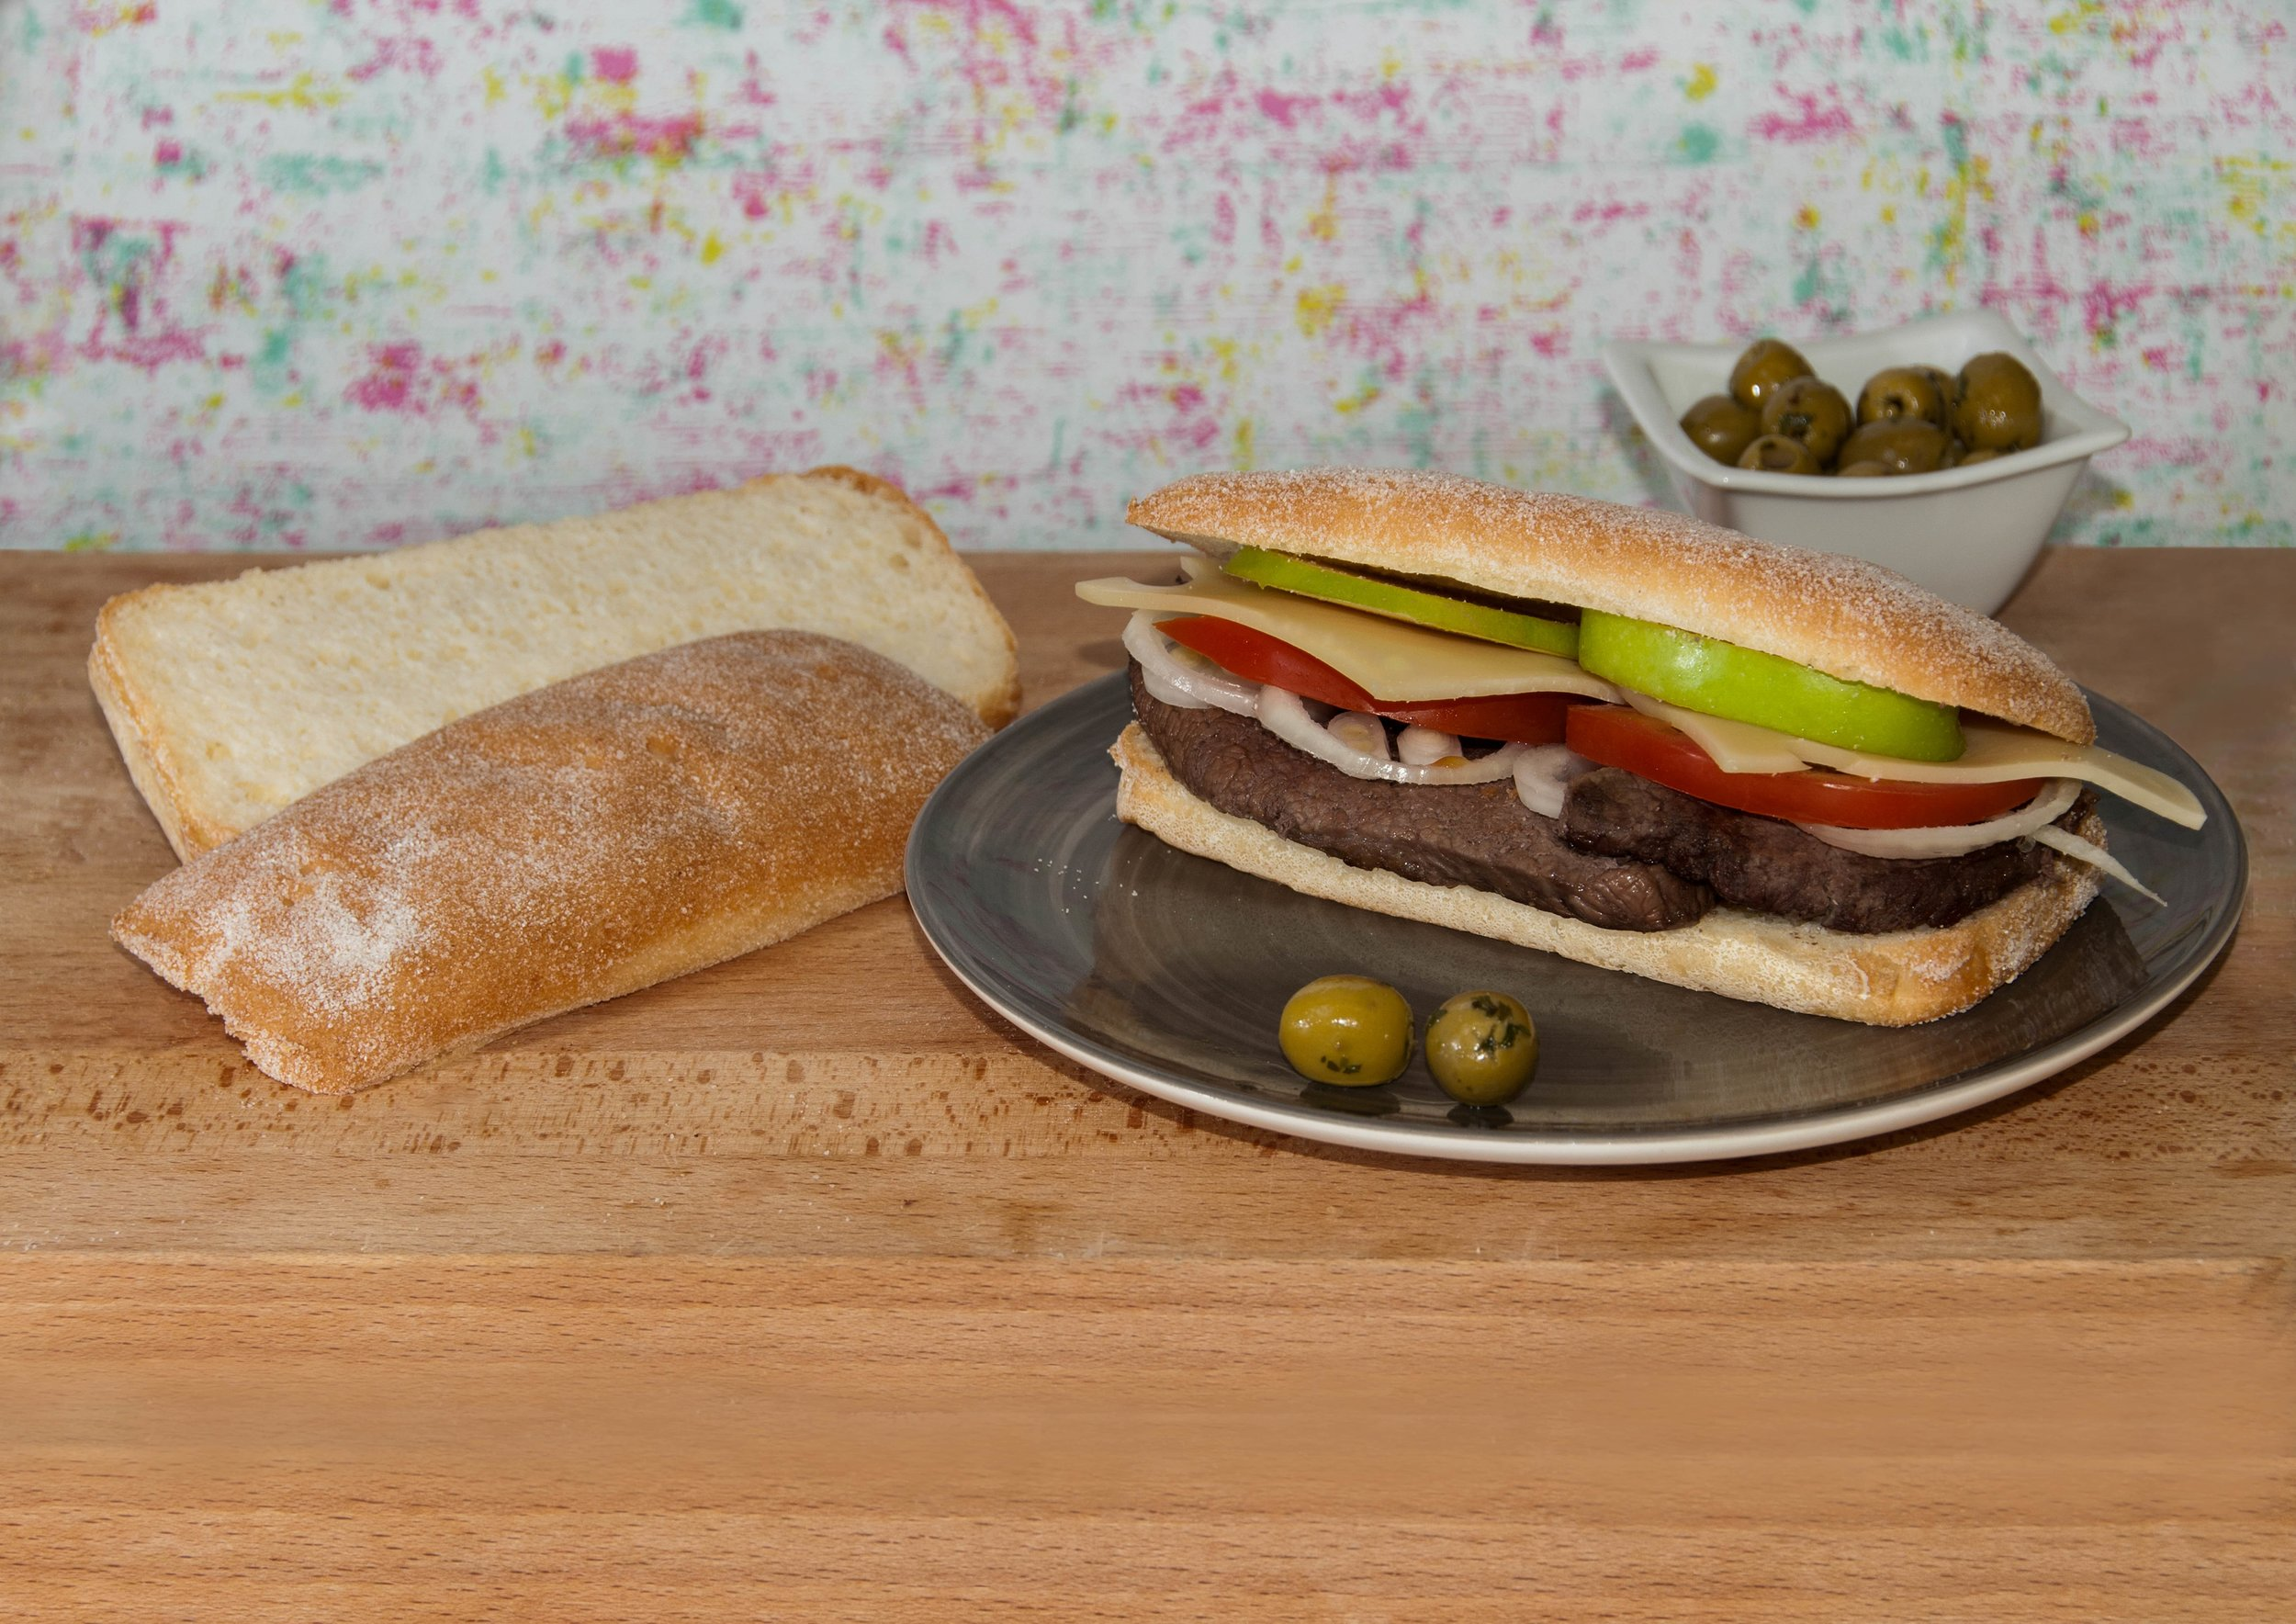 Gluten Free Panini by Fosters Bakery